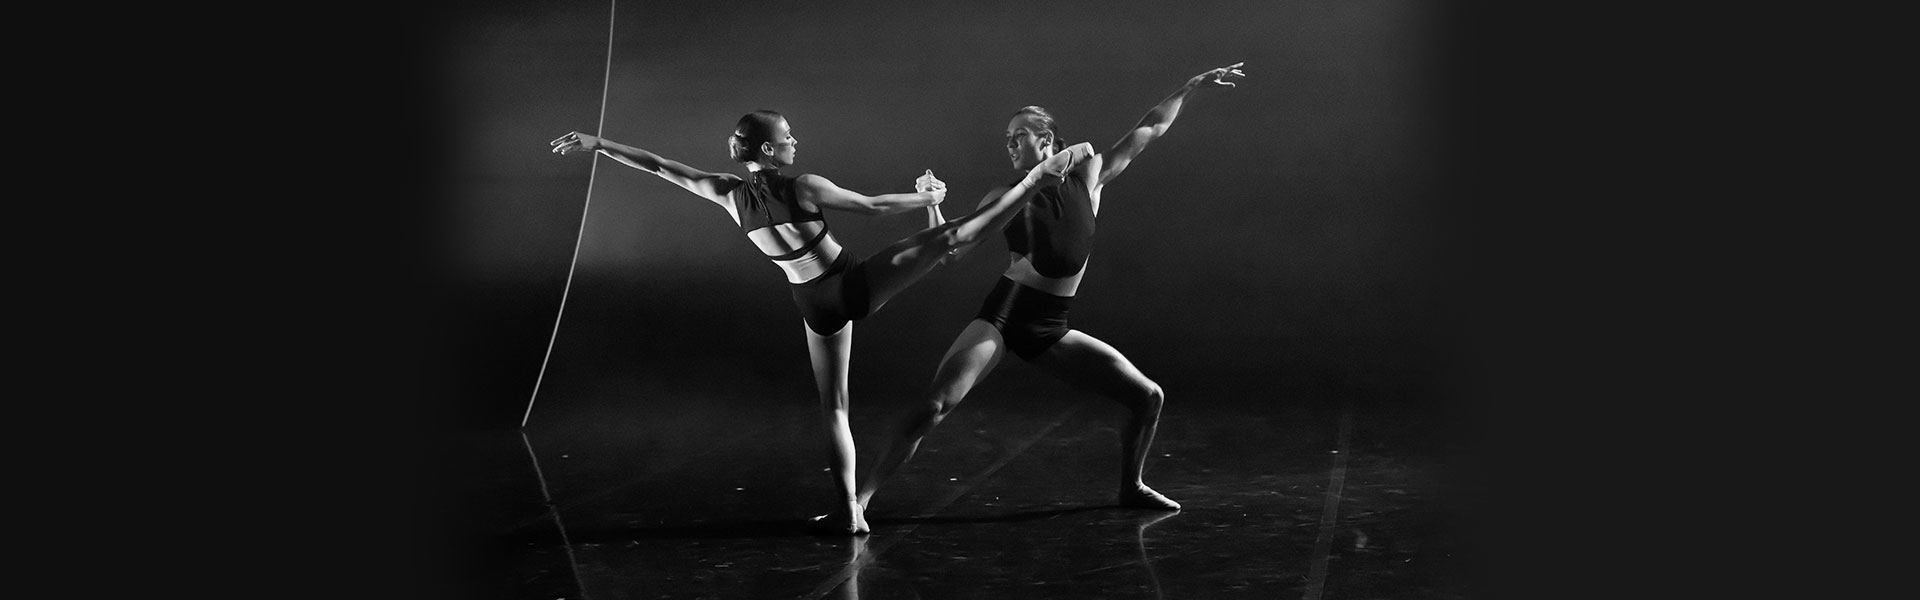 northern ballet dance passion